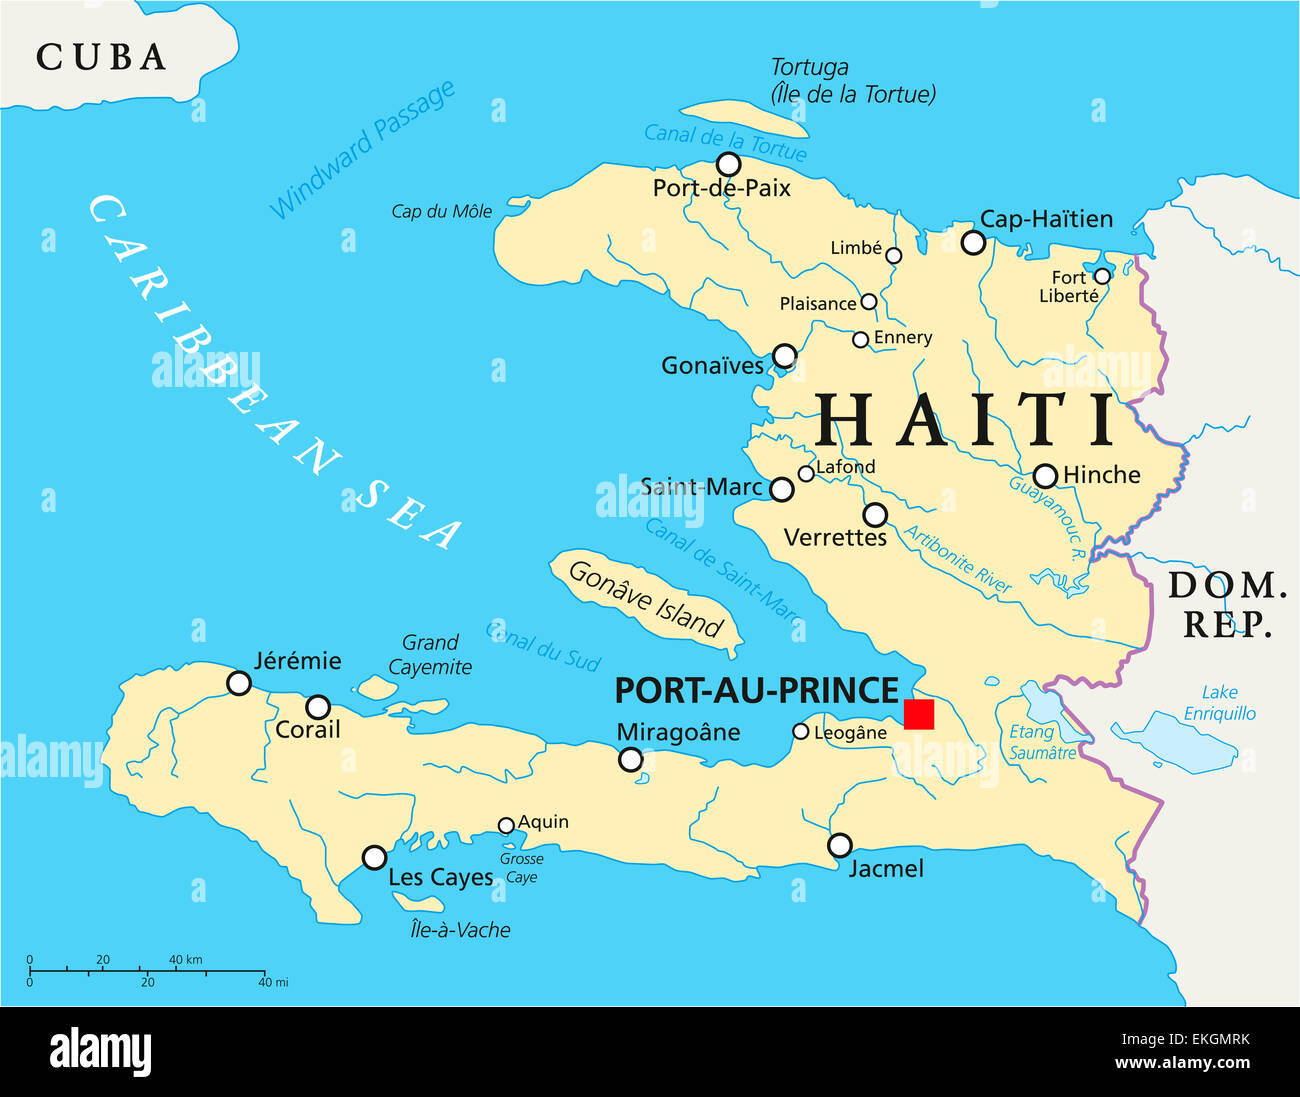 Haiti political map stock photo 80887511 alamy haiti political map gumiabroncs Images